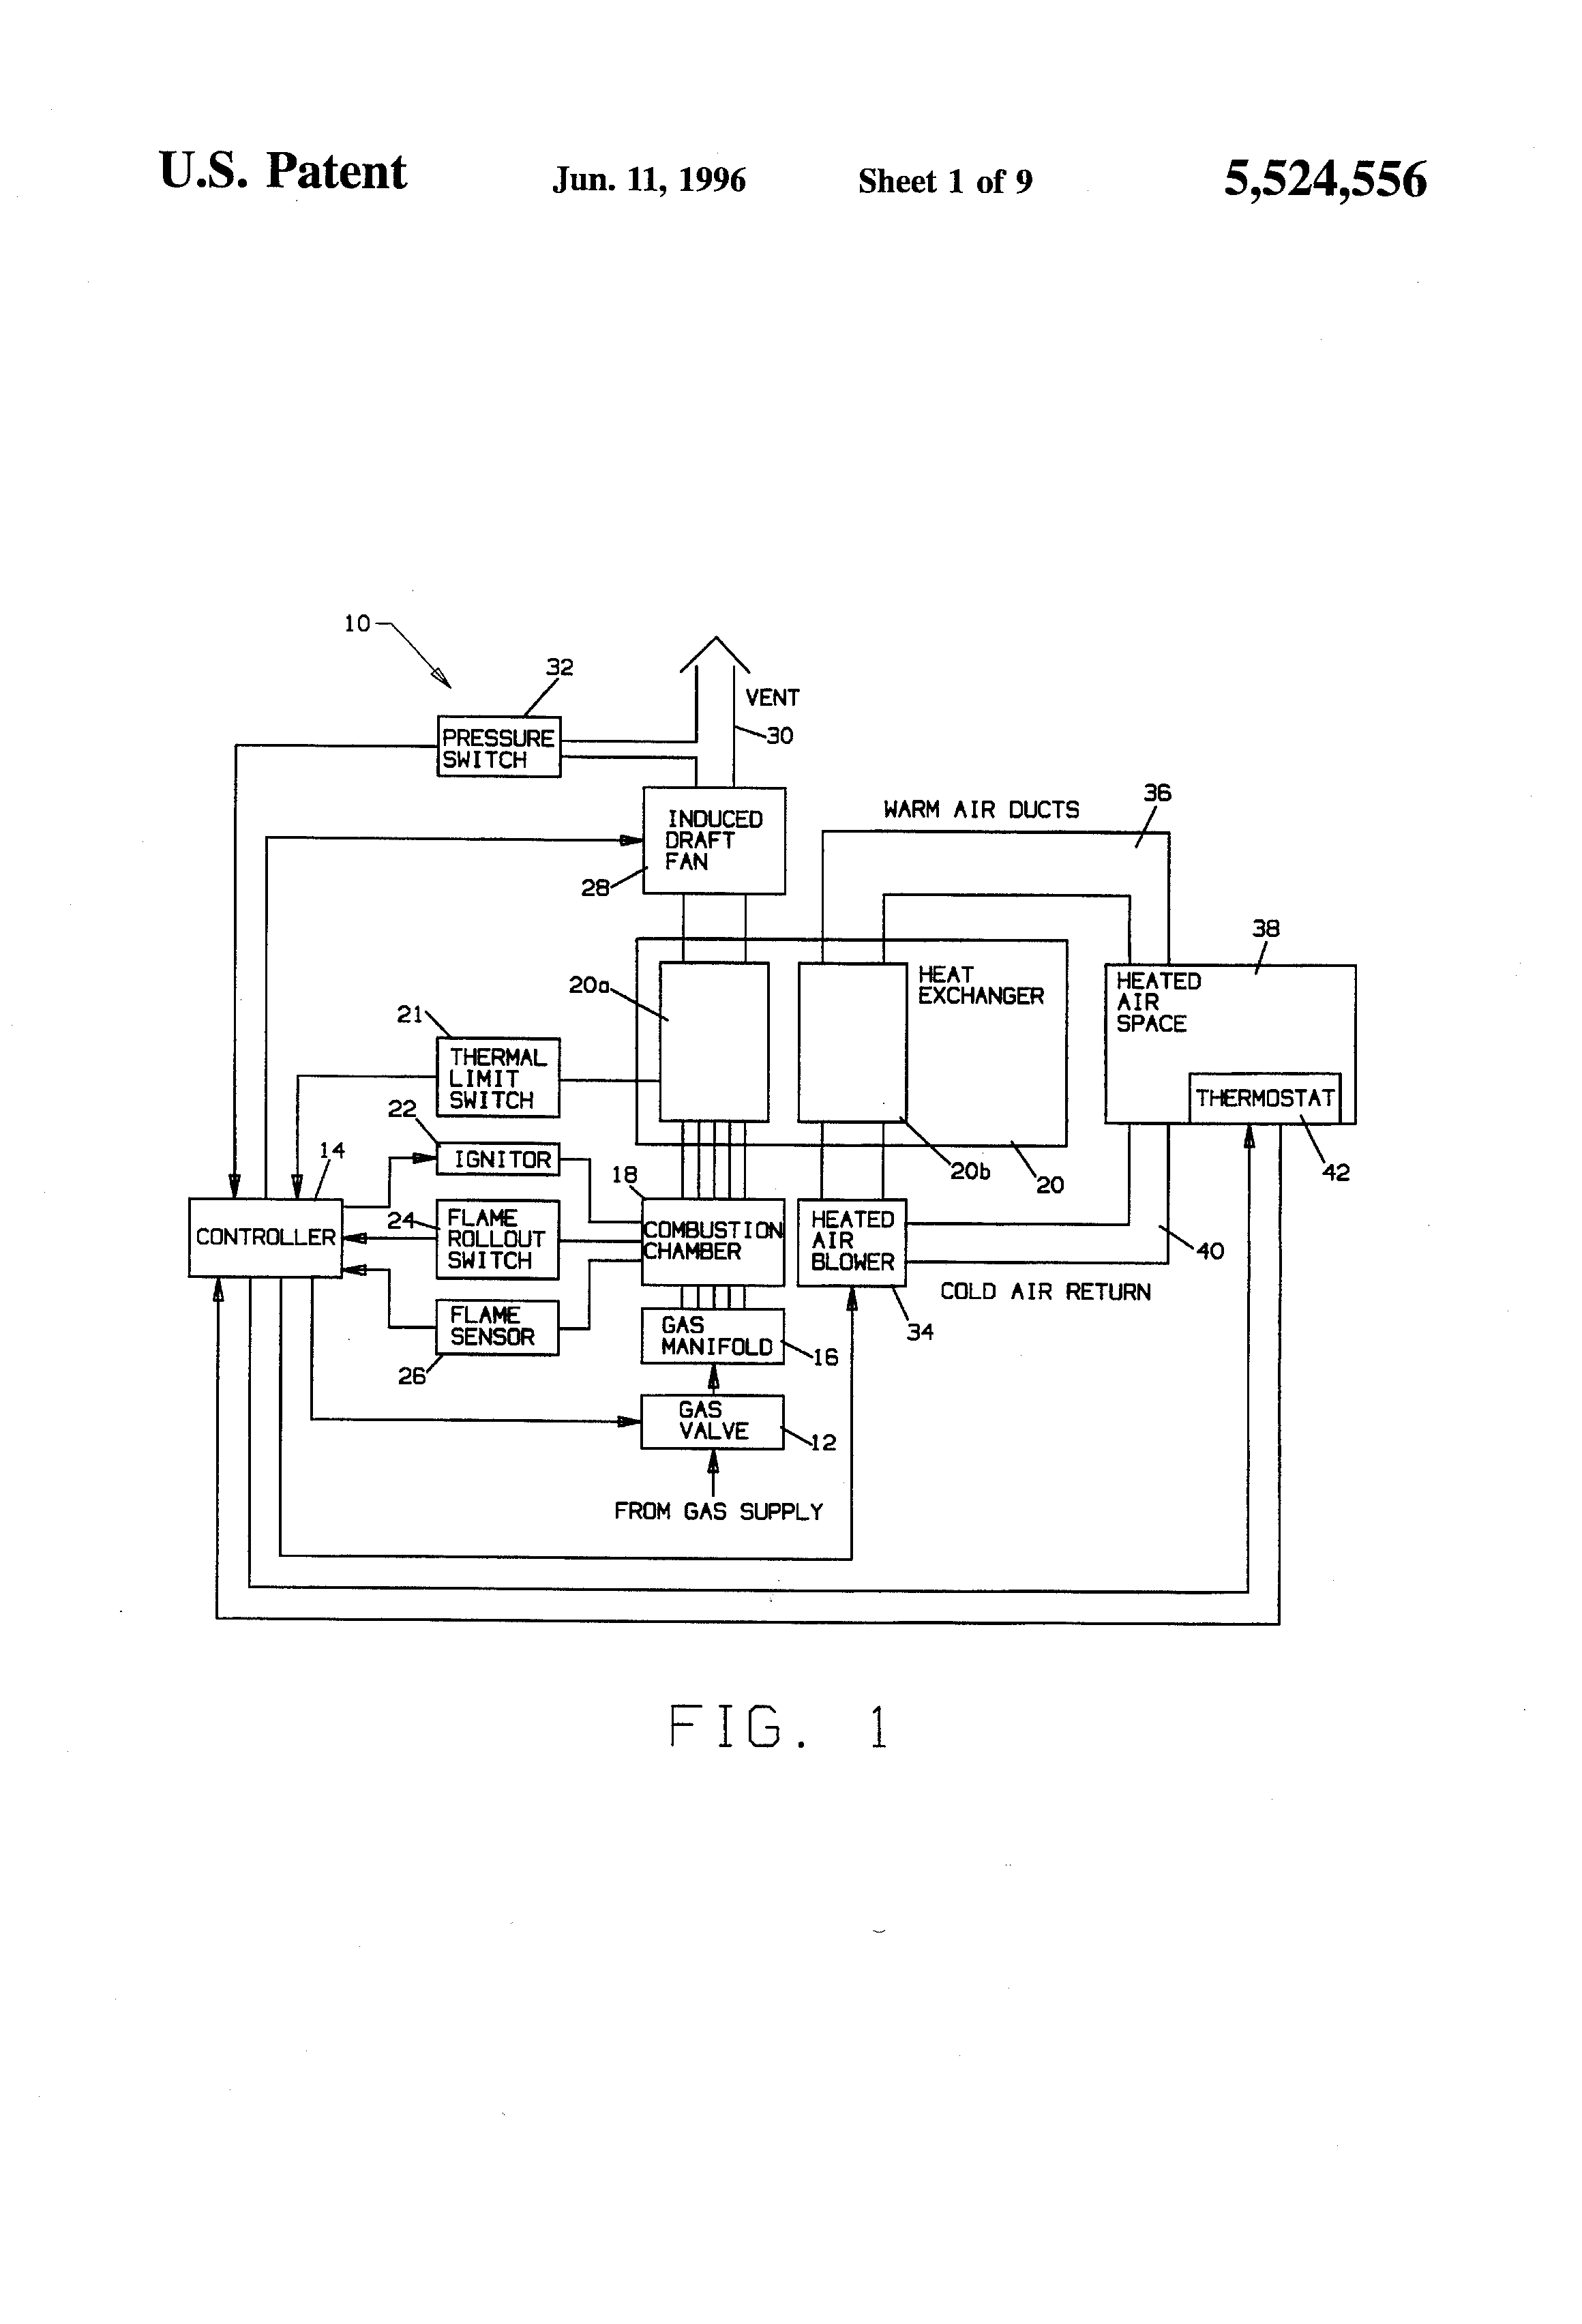 thermostat wiring diagram for electric furnace wireless winch remote patent us5524556 - induced draft fan control use with gas furnaces google patents